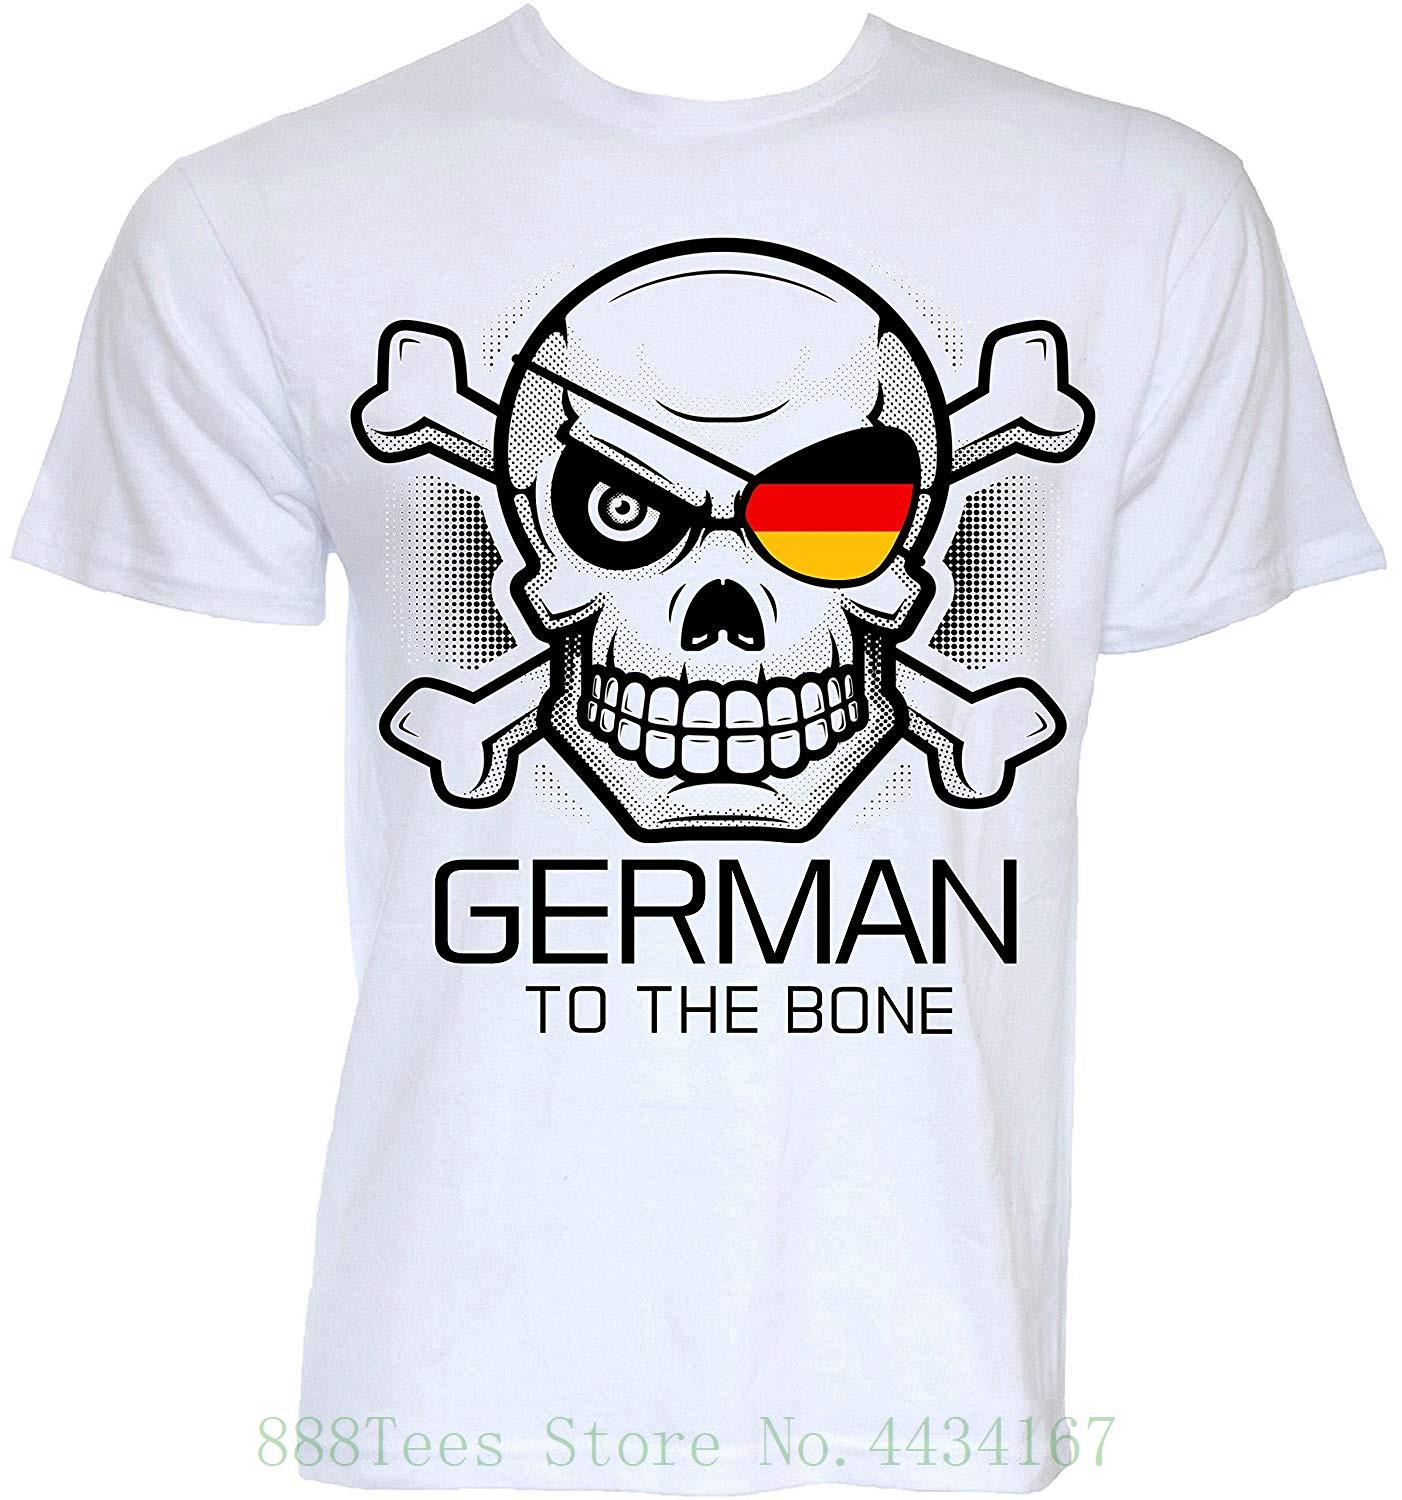 70d89ef610 Beat Tees Clothing Mens Funny Novelty German To The Bone Joke Germany Flag  Slogan Gifts T Shirts T Shirt 2018 Fashion Men Mens T Shirts Funny Shirts  From ...